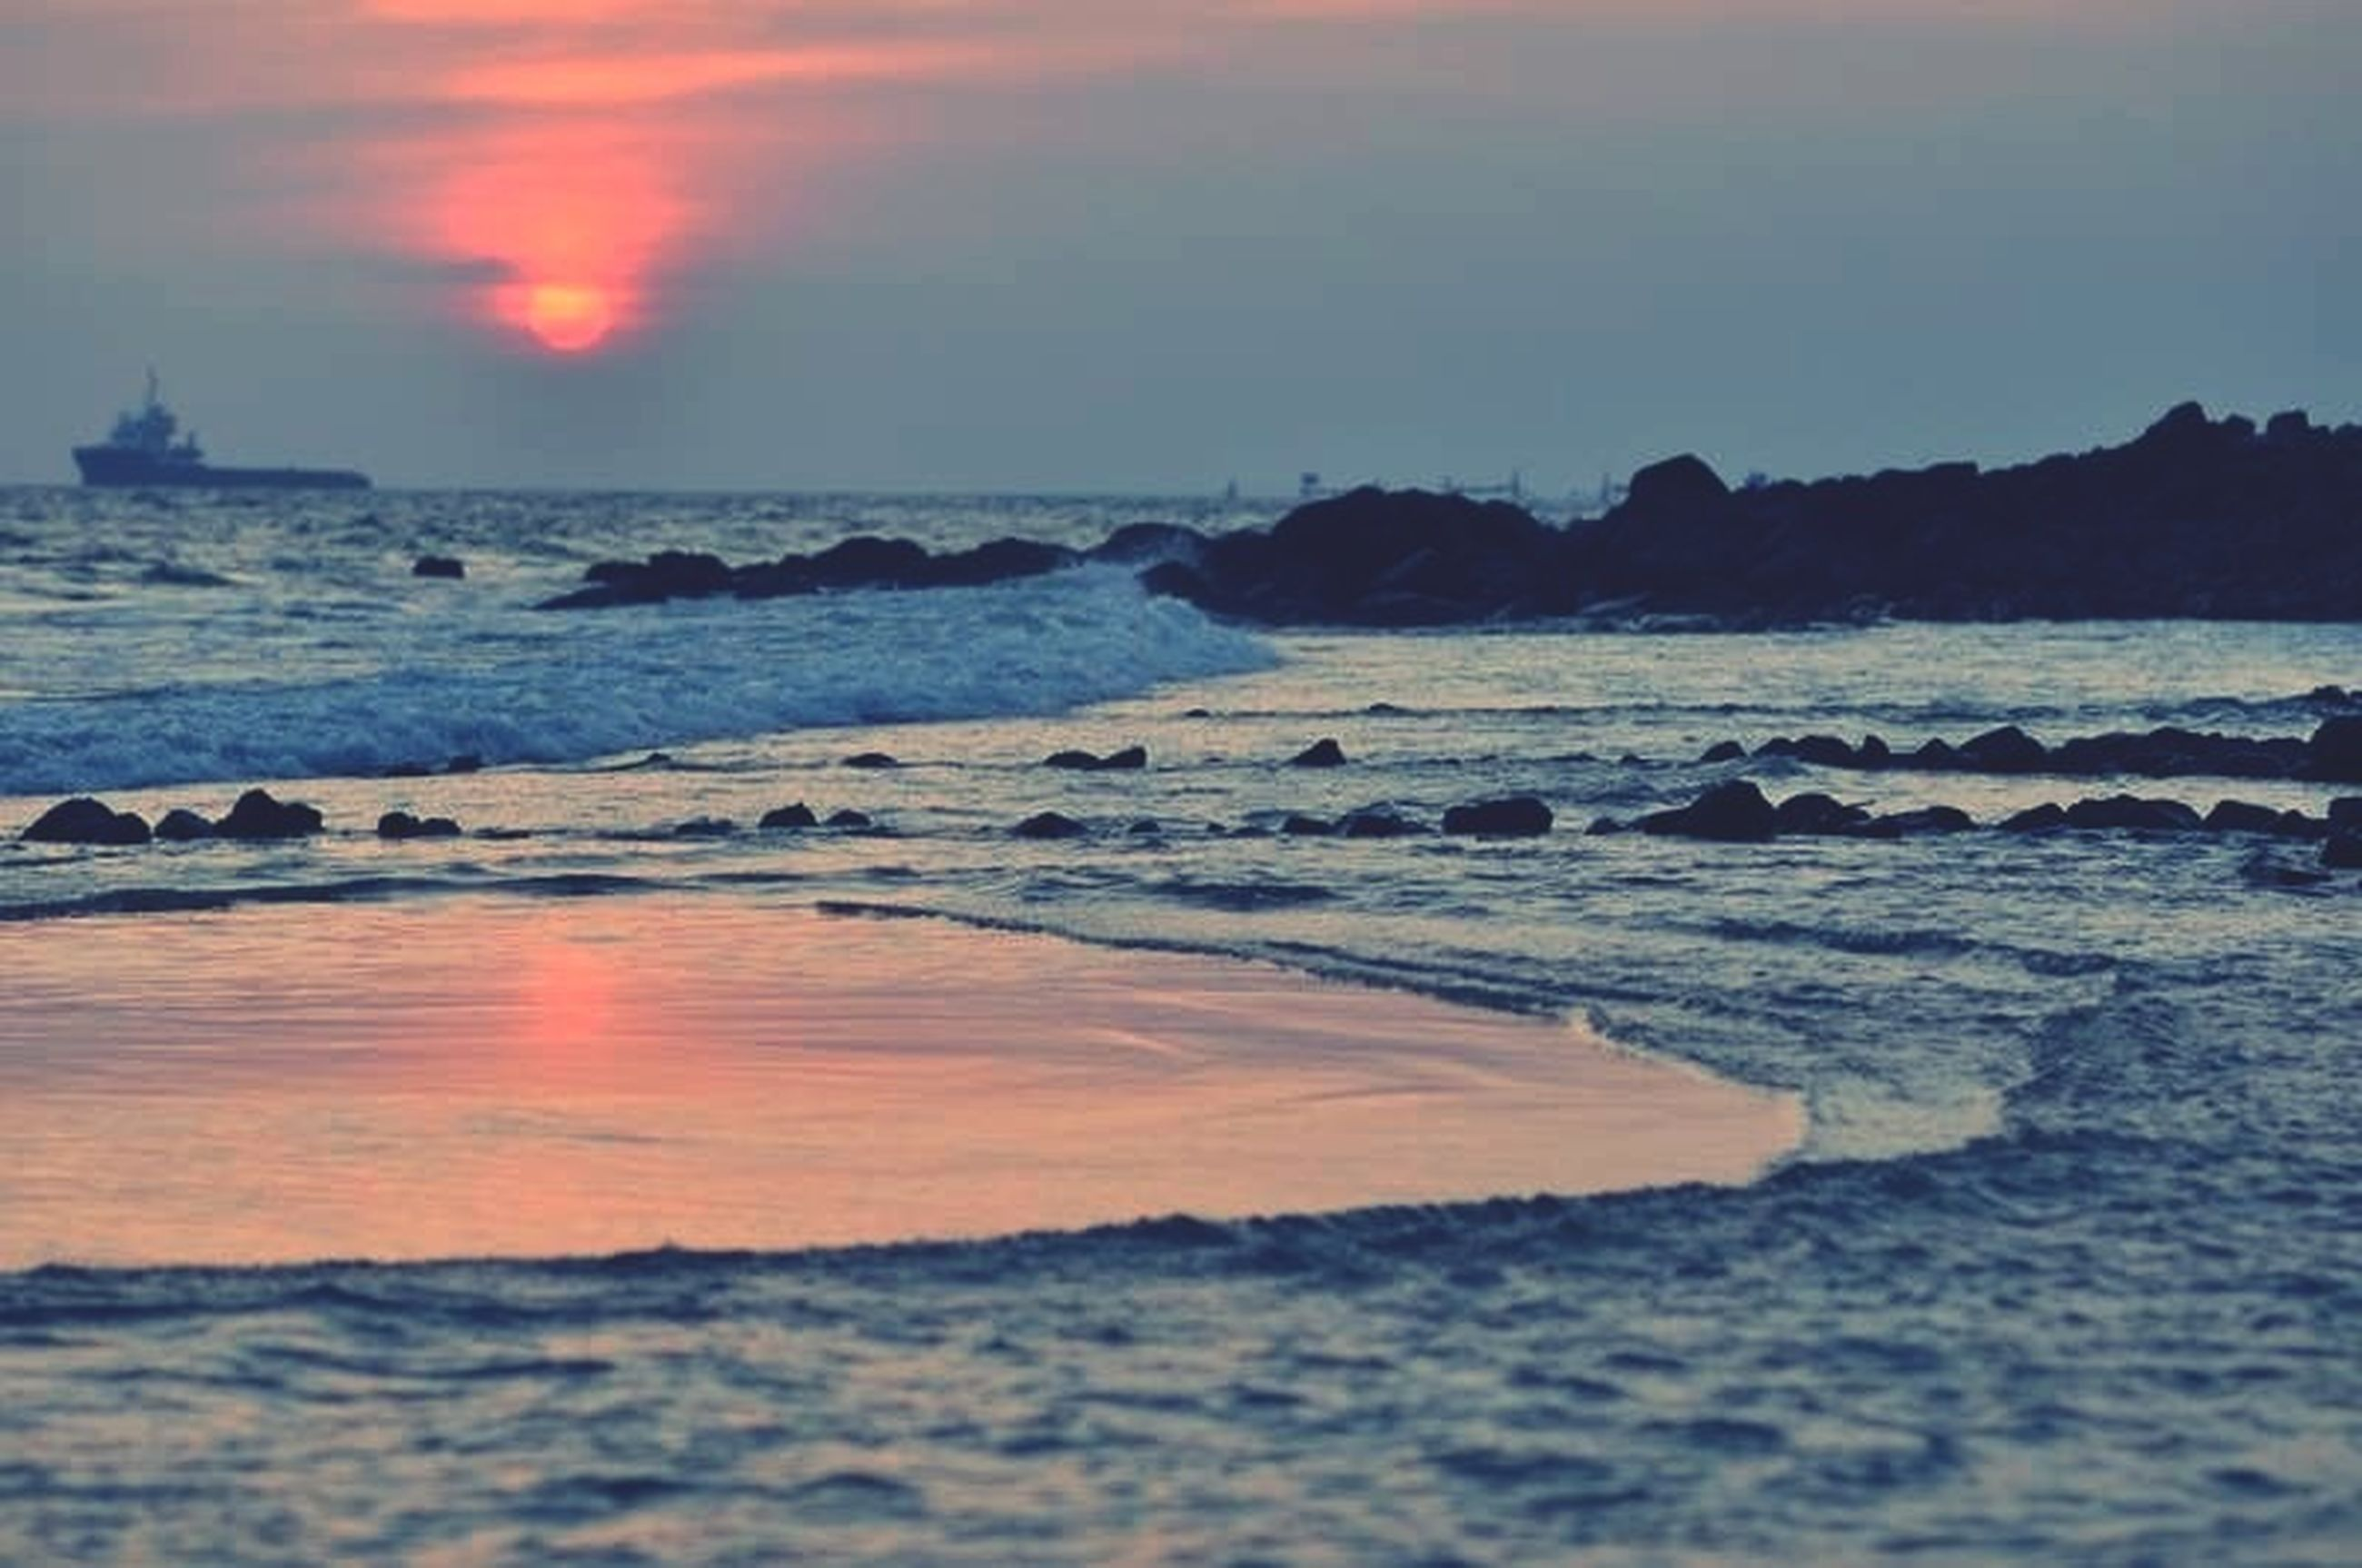 sea, water, sunset, horizon over water, beach, scenics, tranquil scene, beauty in nature, tranquility, sky, shore, wave, nature, idyllic, rock - object, surf, orange color, coastline, remote, outdoors